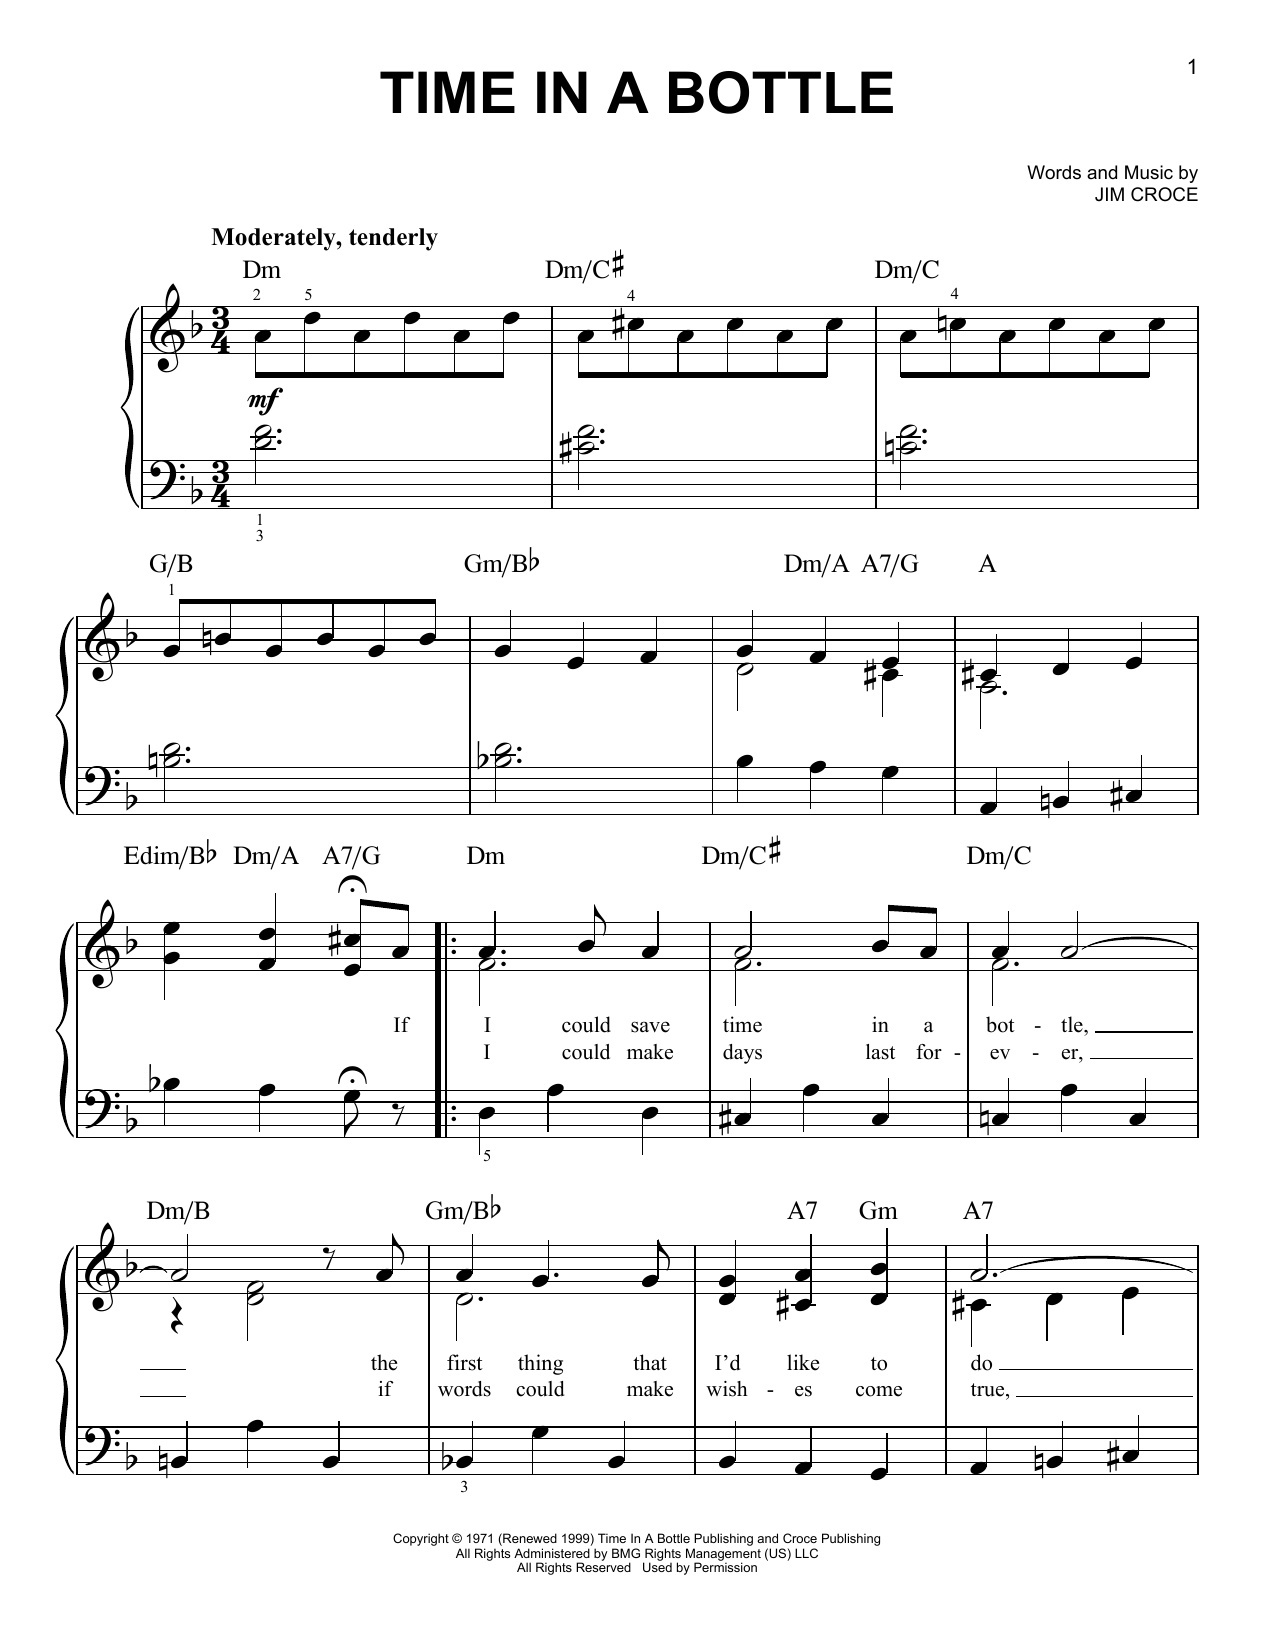 Jim Croce Time In A Bottle sheet music notes and chords. Download Printable PDF.